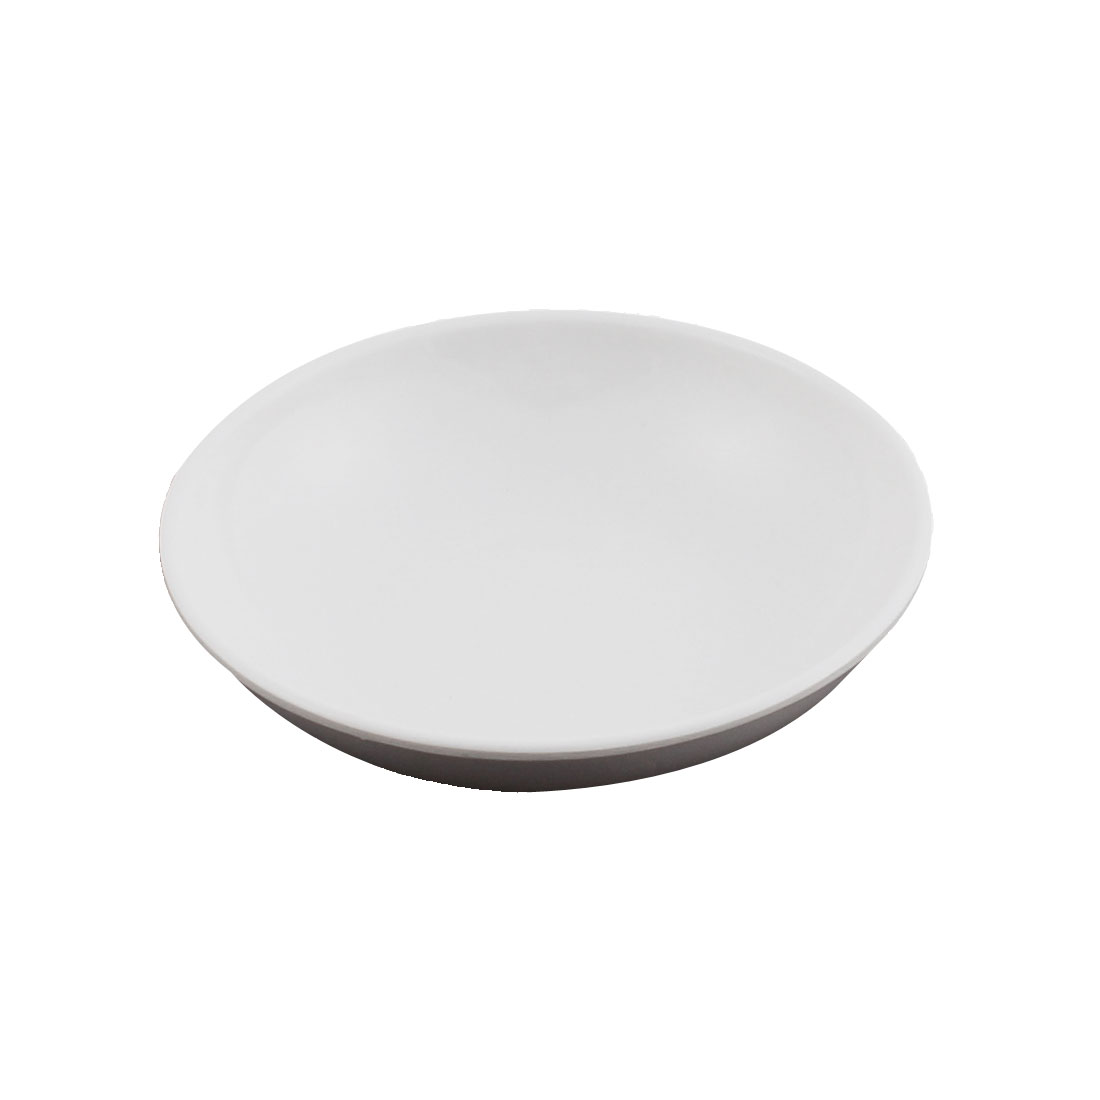 Food Oil Soy Sauce Wasabi Plastic Dish Plate Saucer